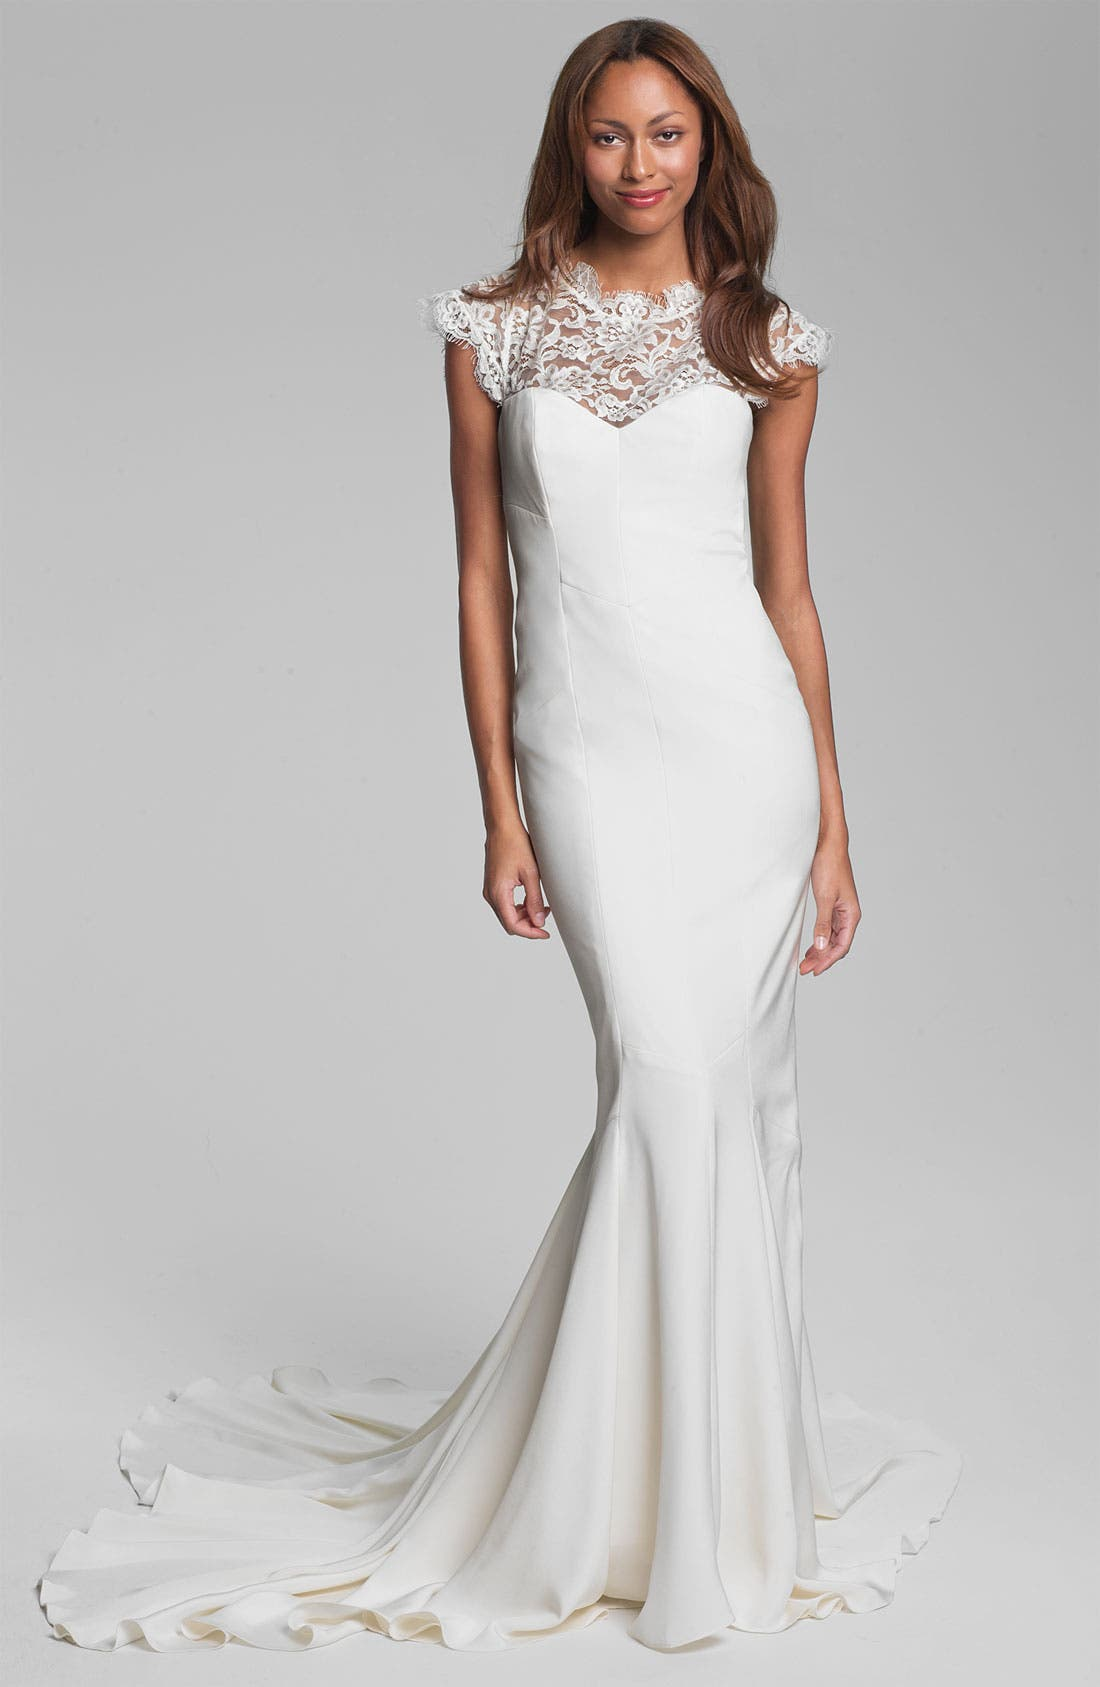 Alternate Image 1 Selected - Nicole Miller 'Lauren' Lace Yoke Satin & Charmeuse Mermaid Gown